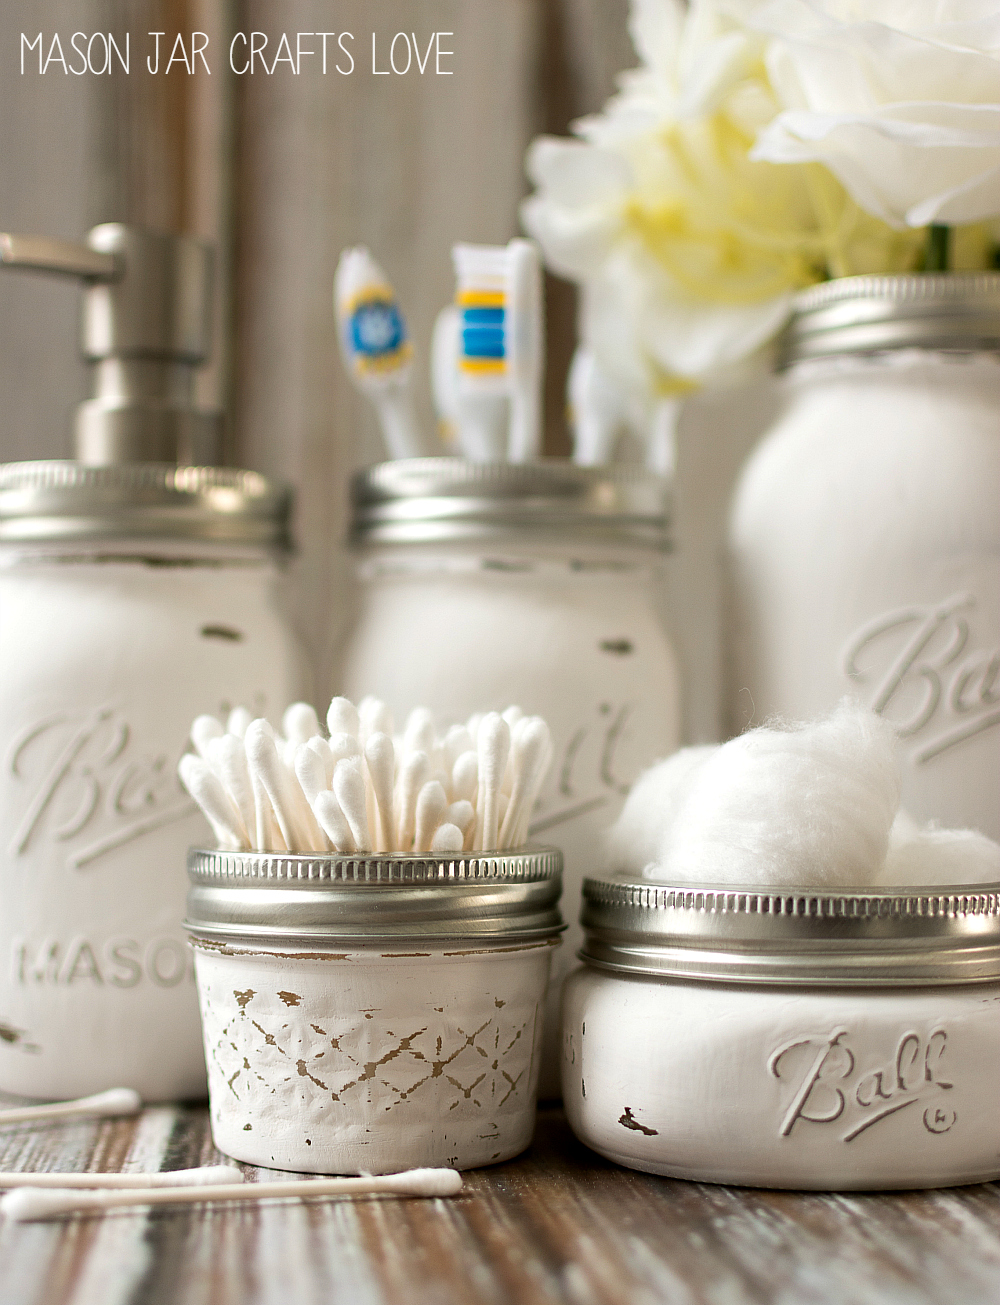 Mason jar bathroom storage accessories mason jar for Bathroom decor mason jars